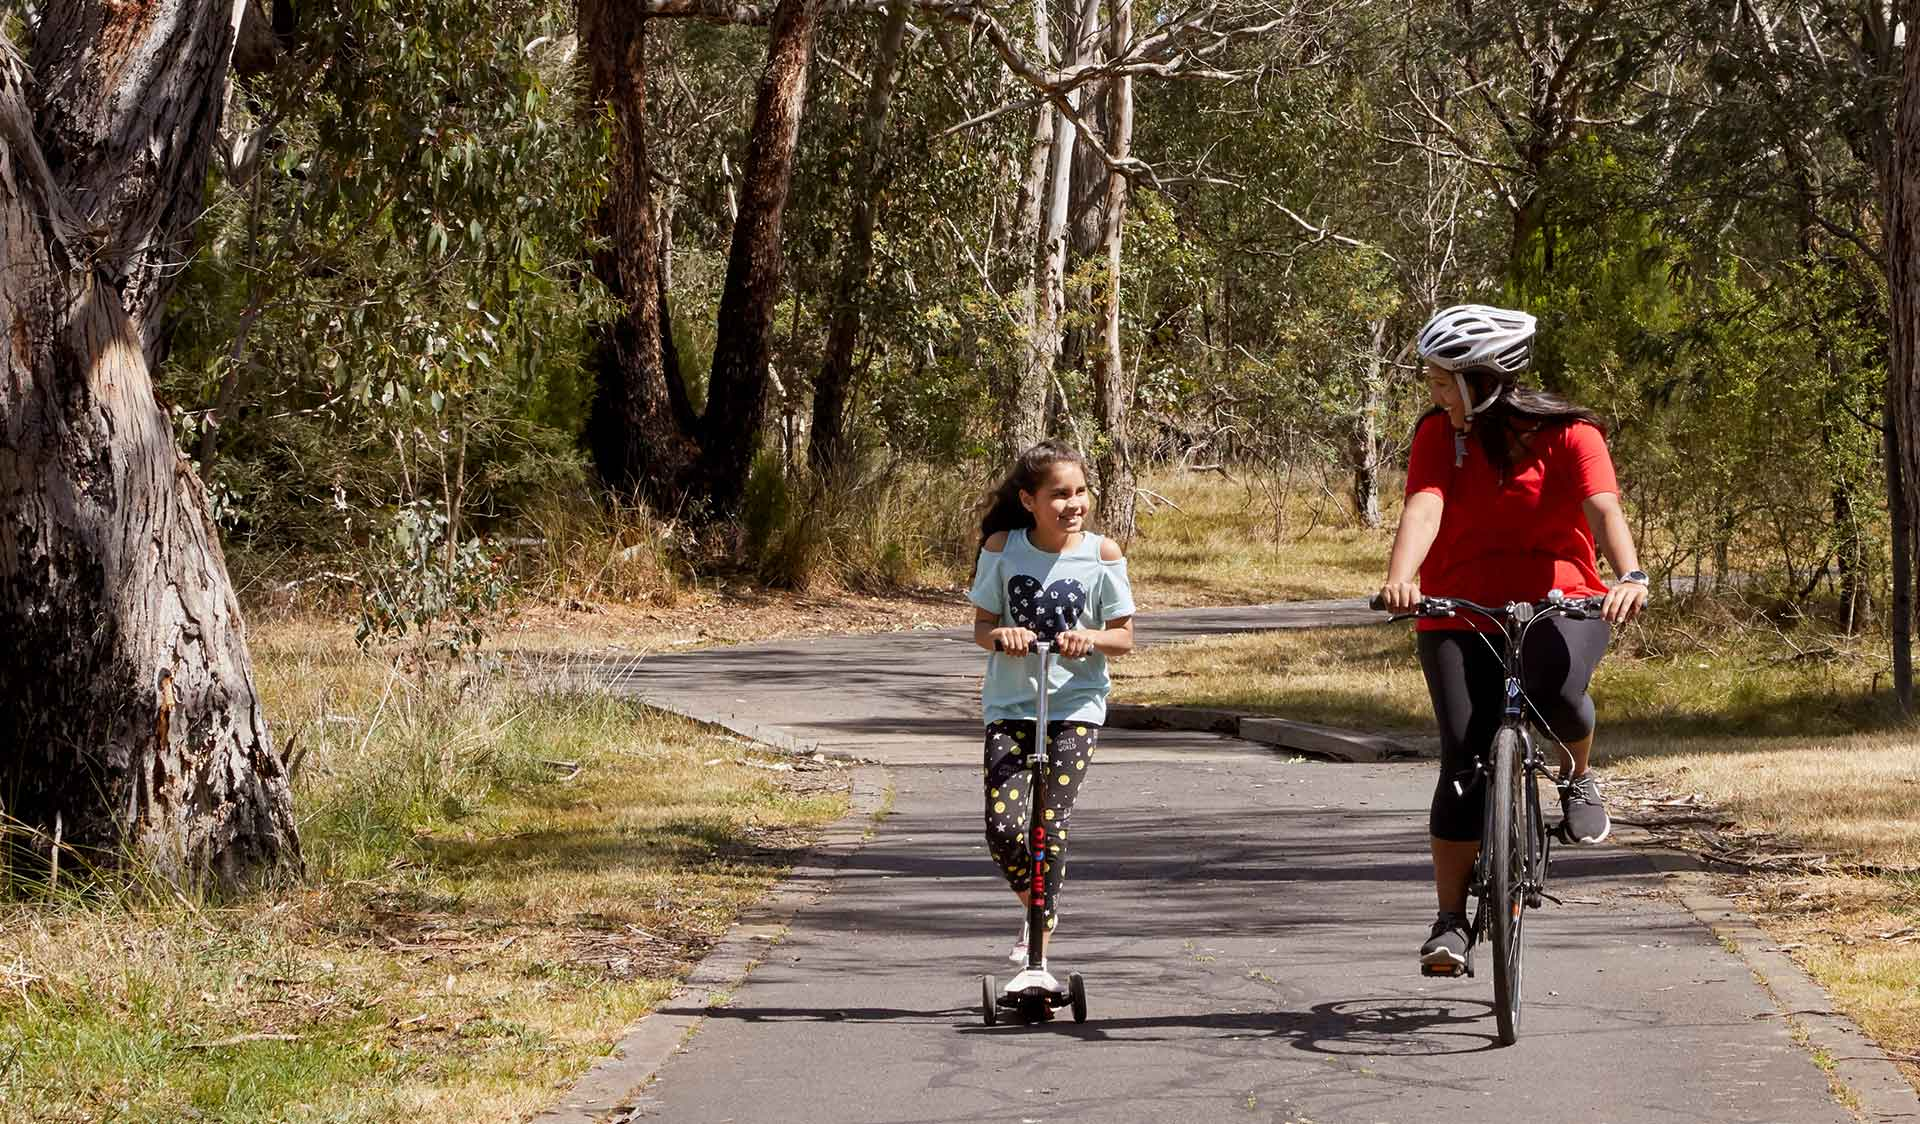 A woman riding a bike alongside a young girl on a scooter